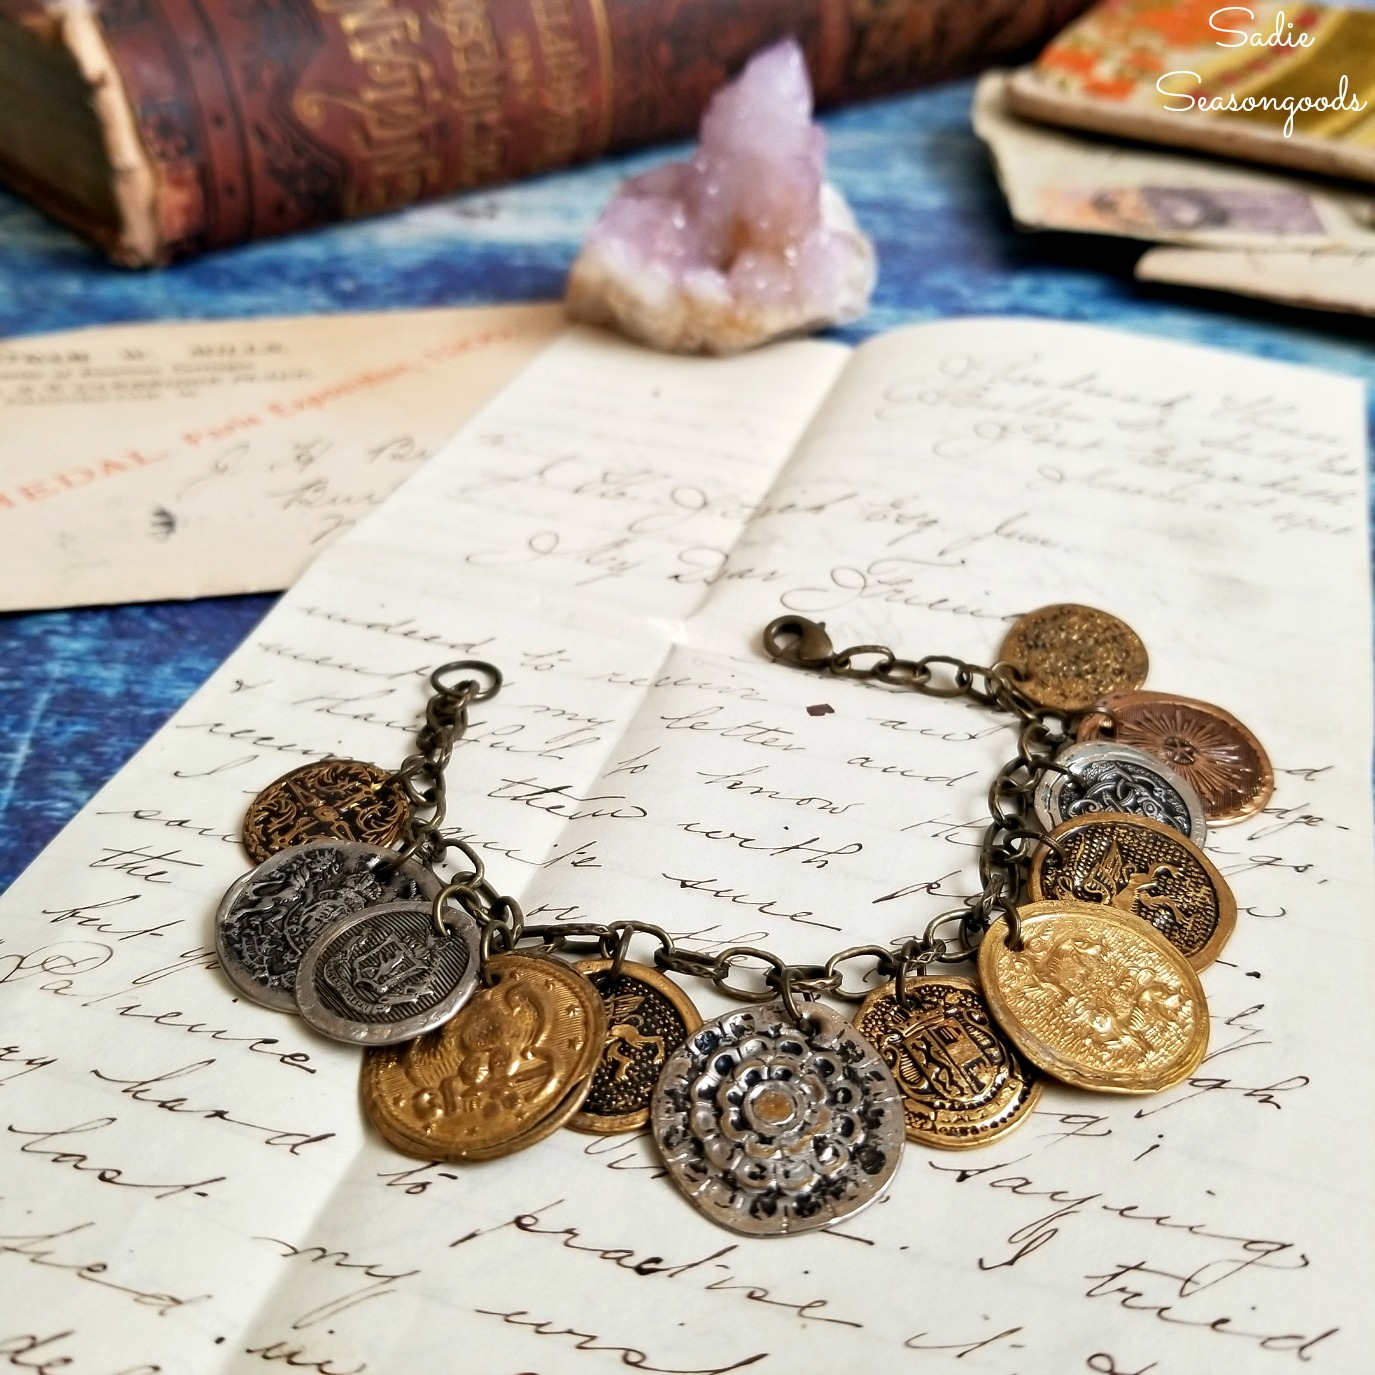 Making Coin Jewelry / Boho Jewelry from Metal Buttons